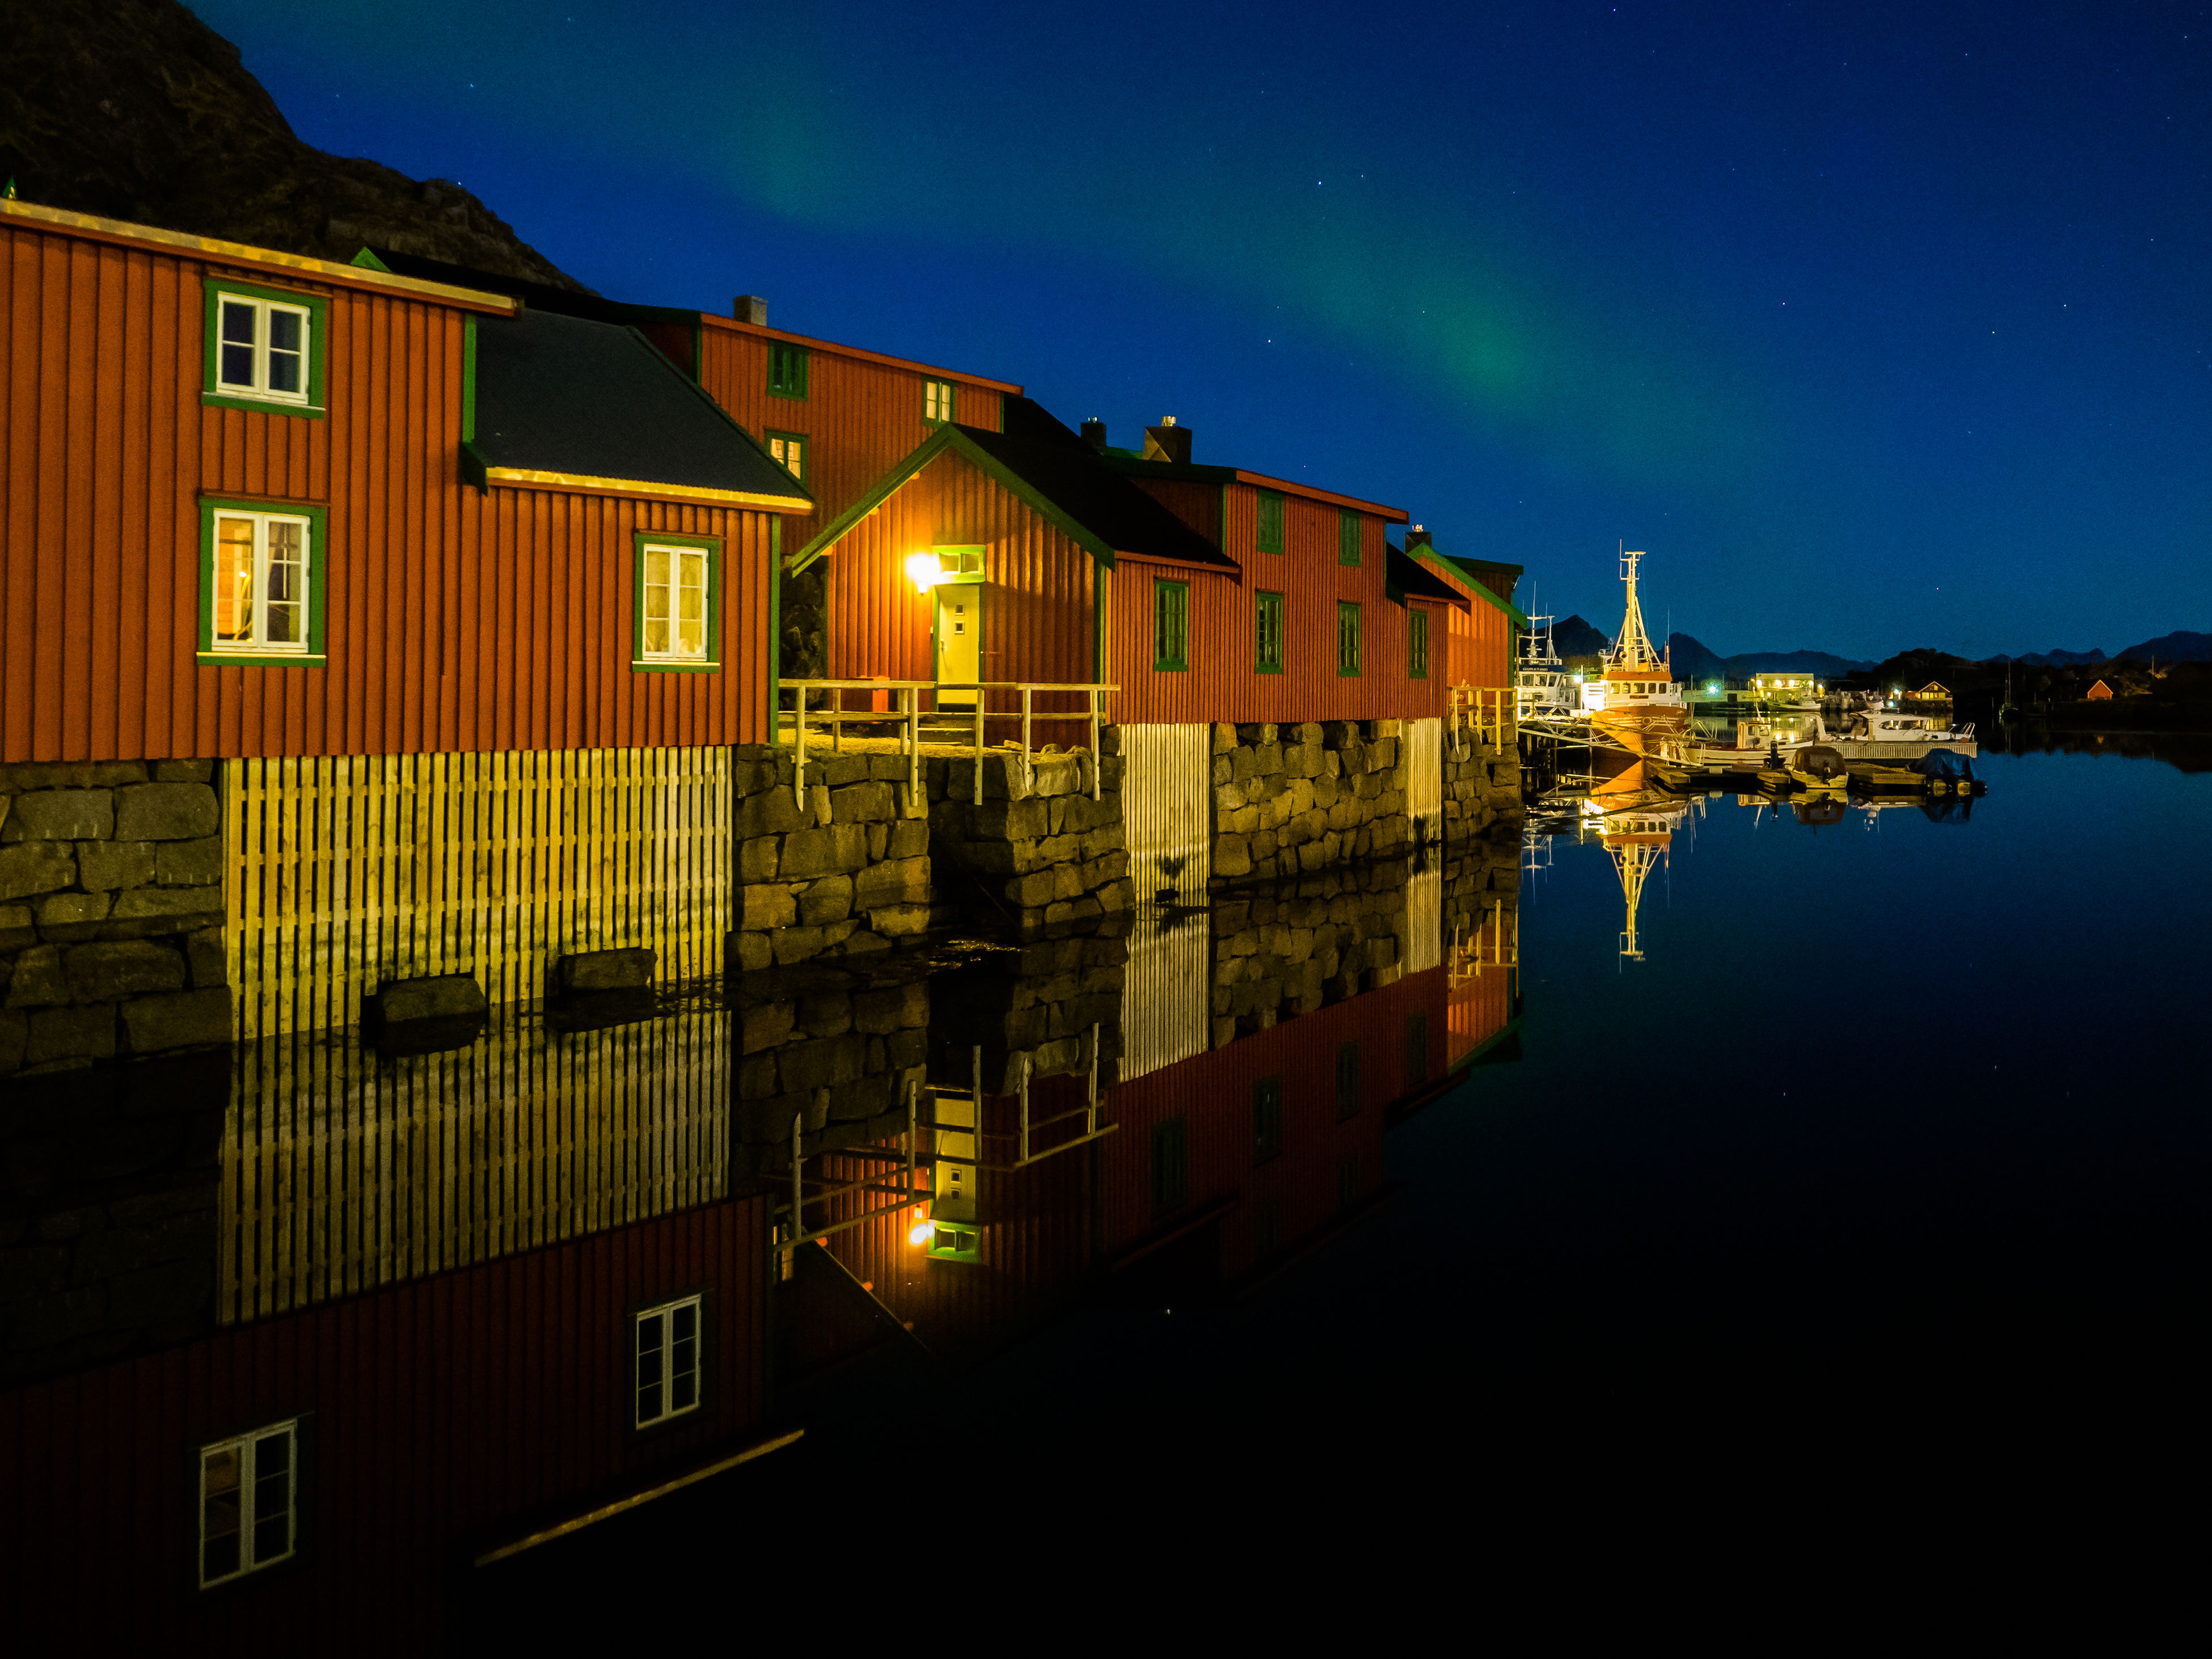 building exterior, architecture, built structure, night, illuminated, reflection, house, water, waterfront, residential building, no people, sky, outdoors, moon, nature, city